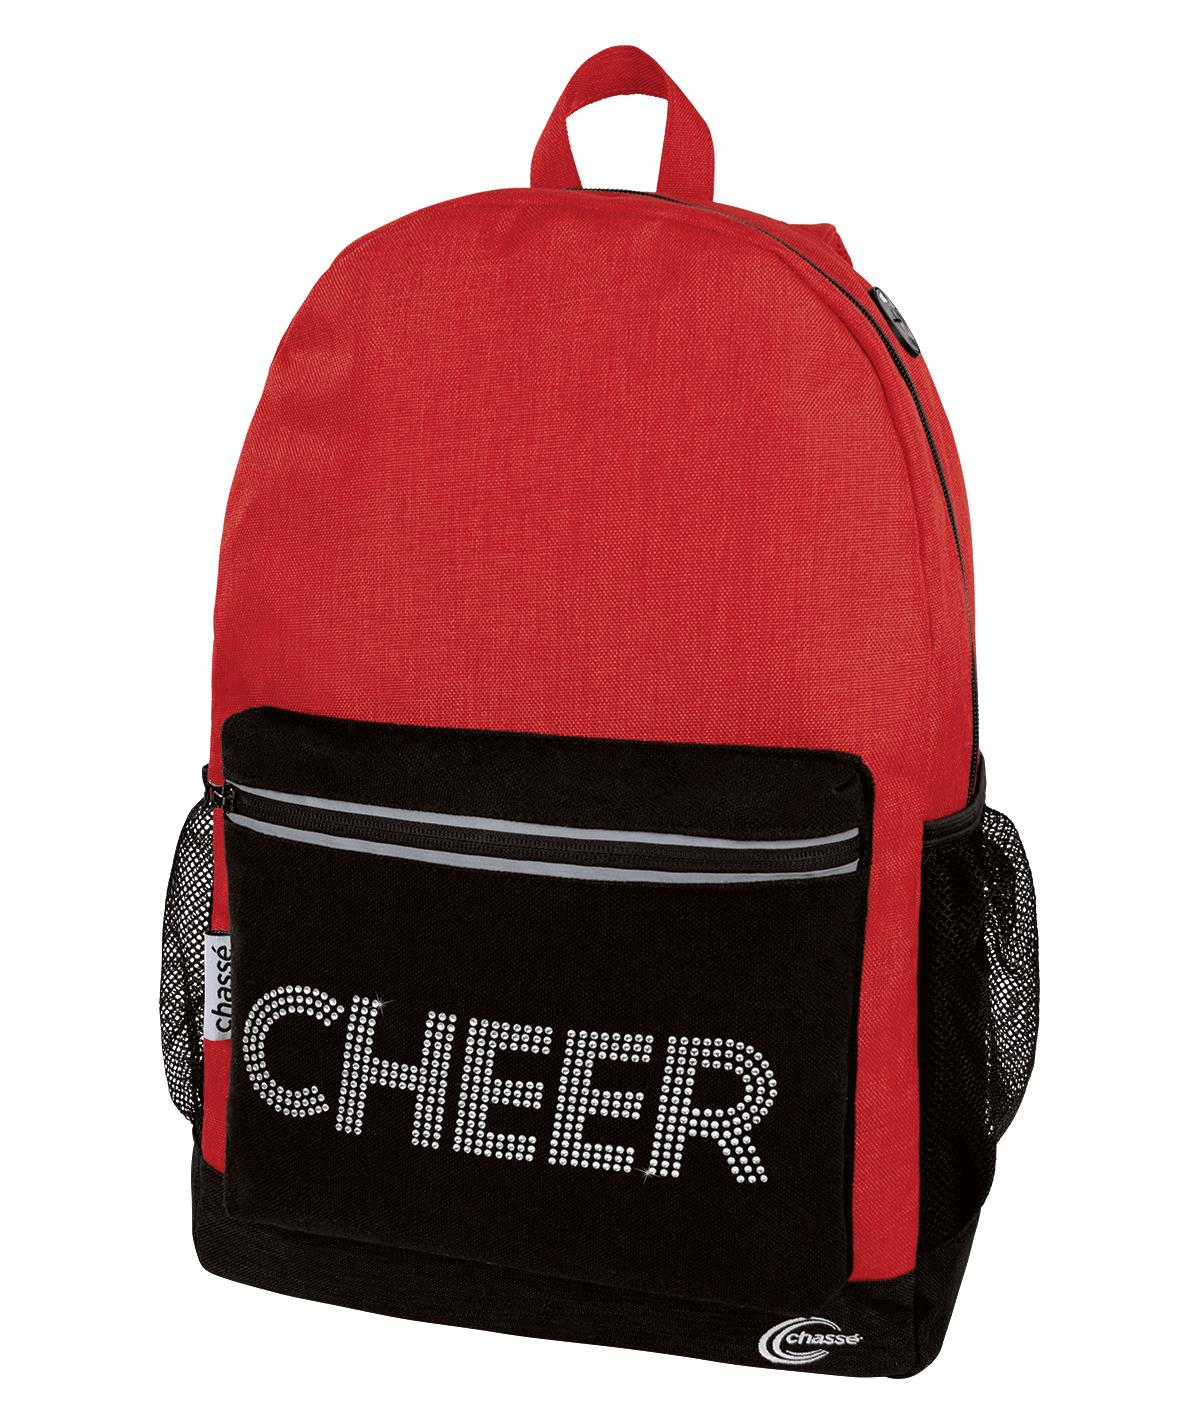 Chassé Score Backpack